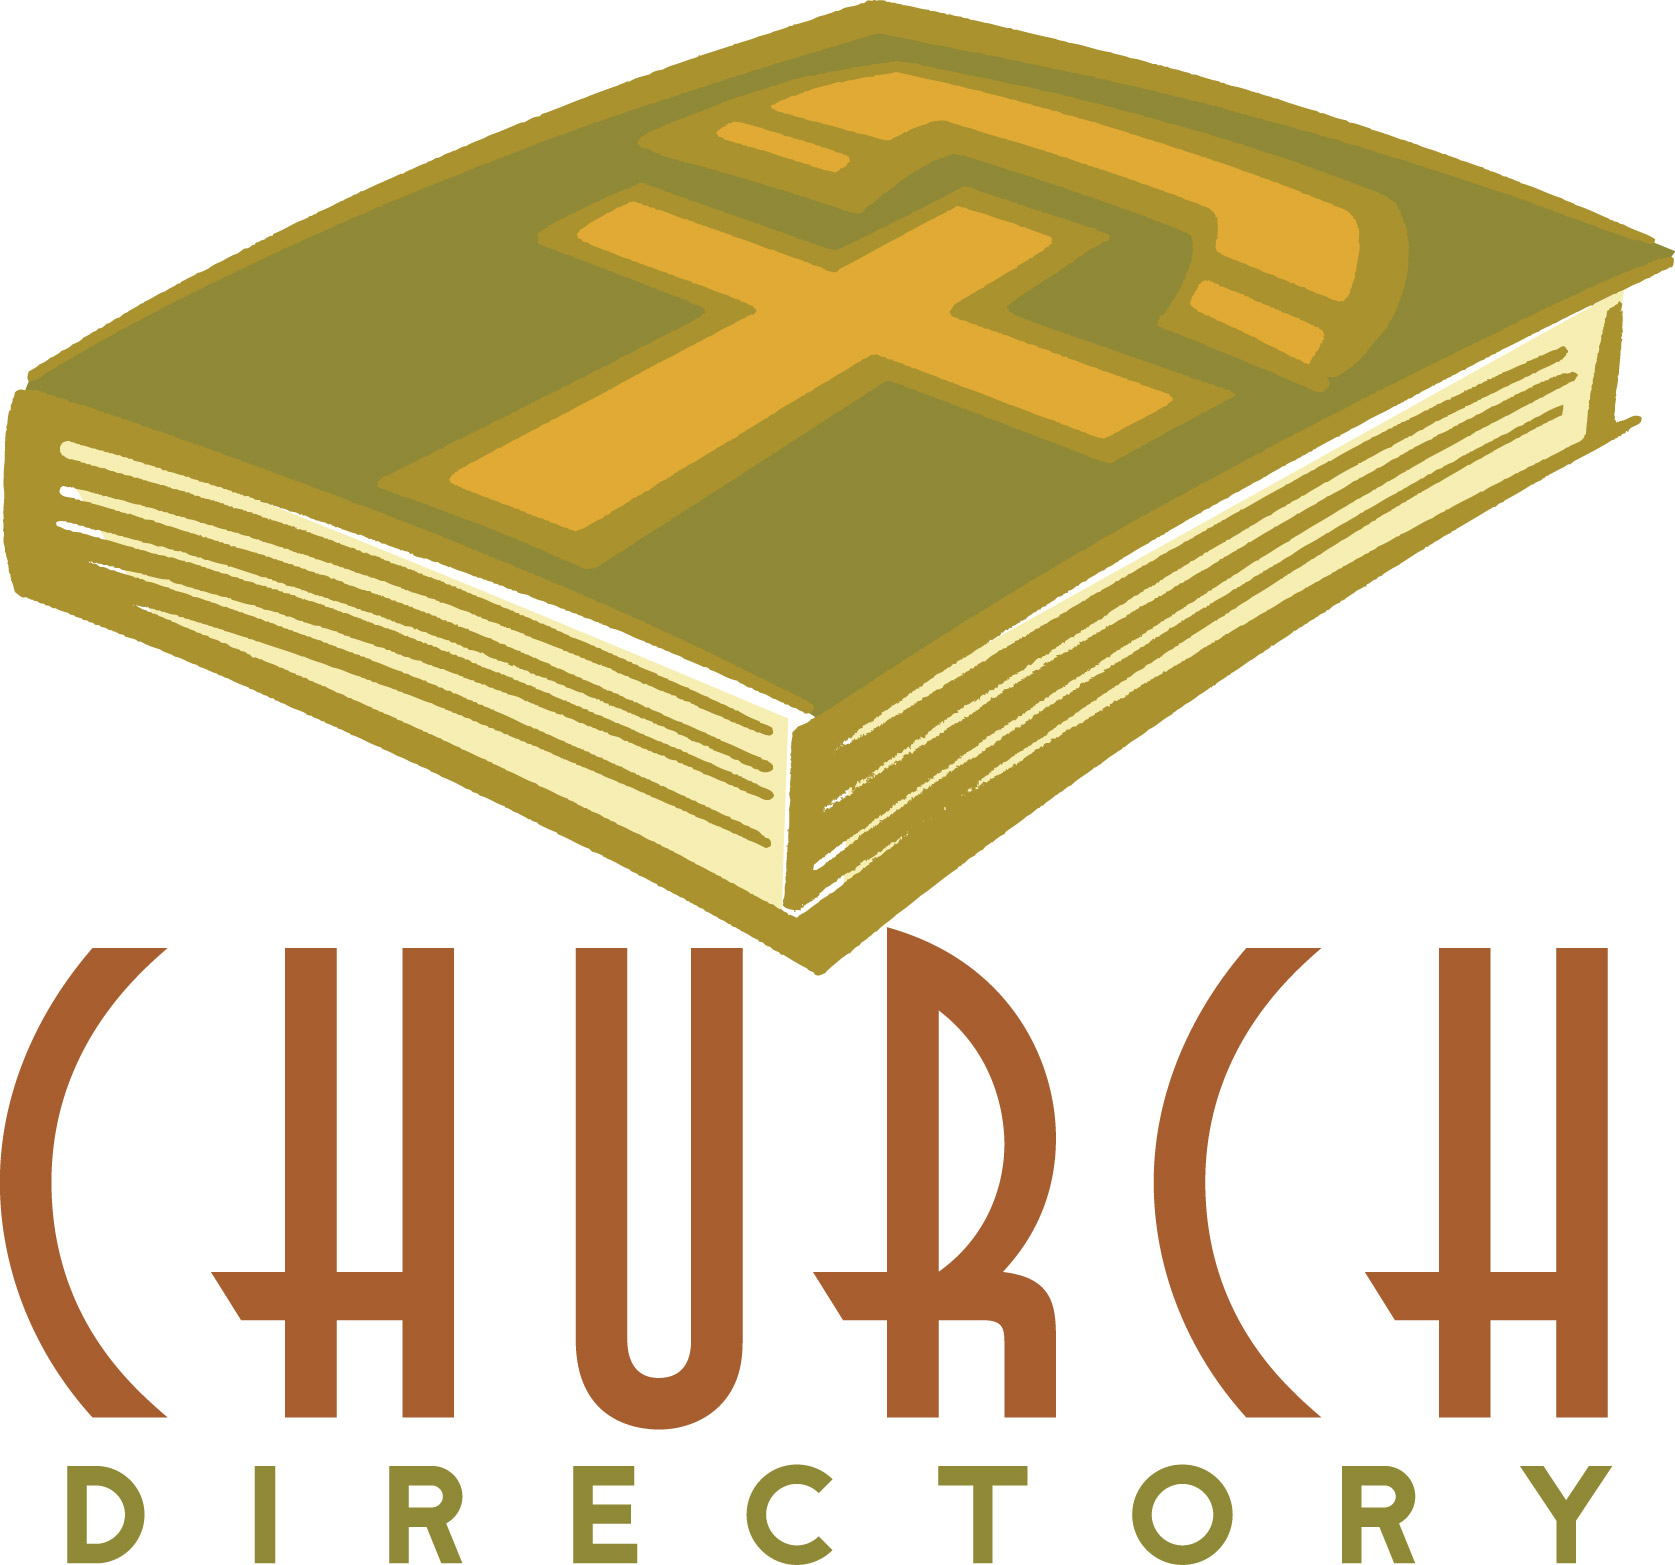 Image result for church directory clipart